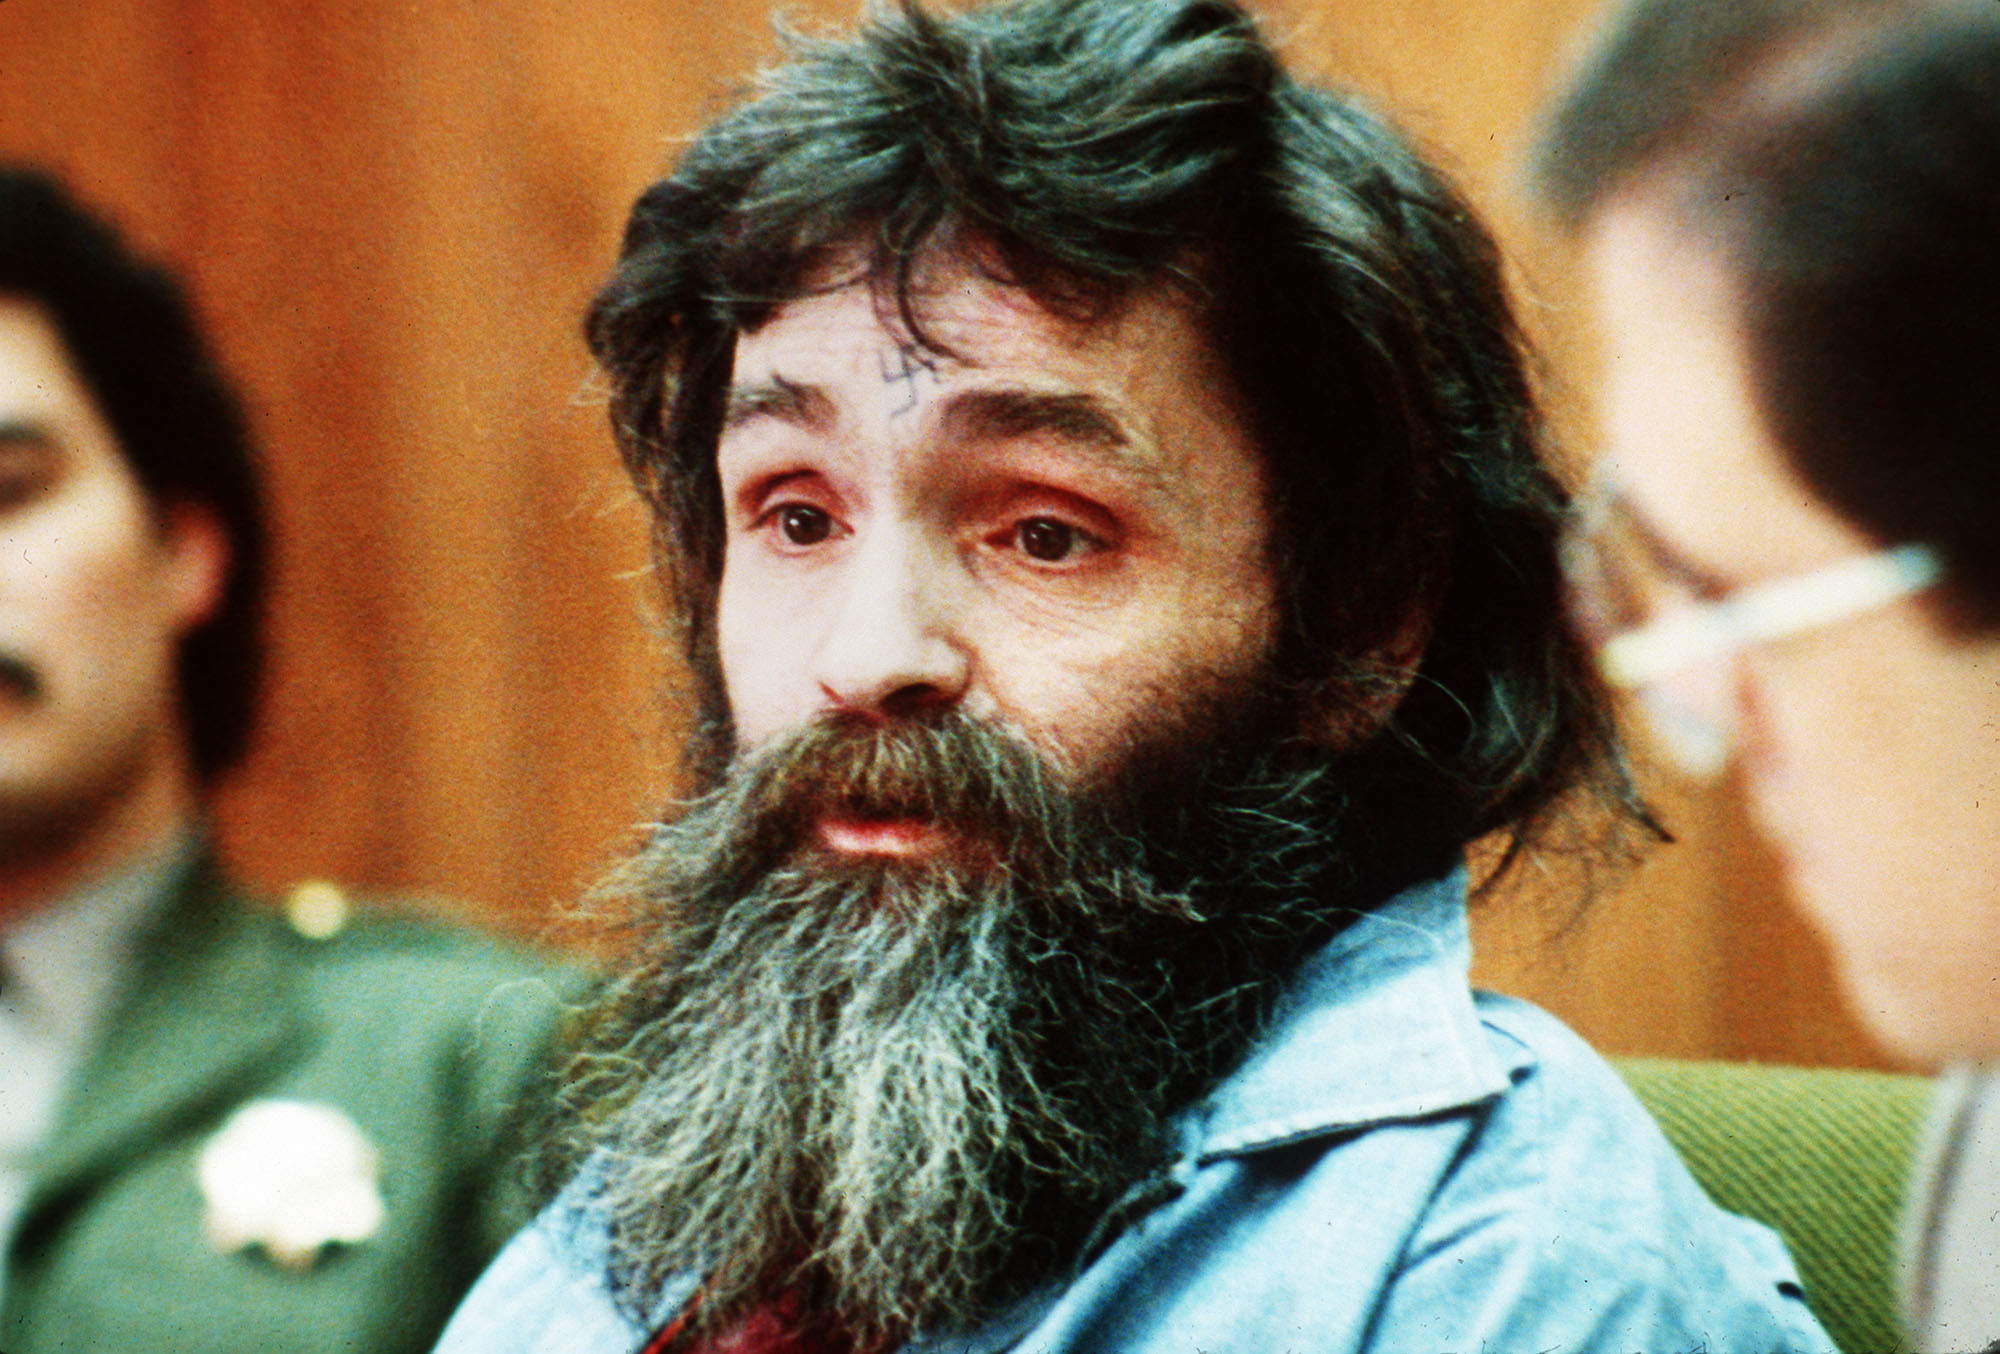 Murderer Charles Manson Dies of Natural Causes In Hospital At Age 83